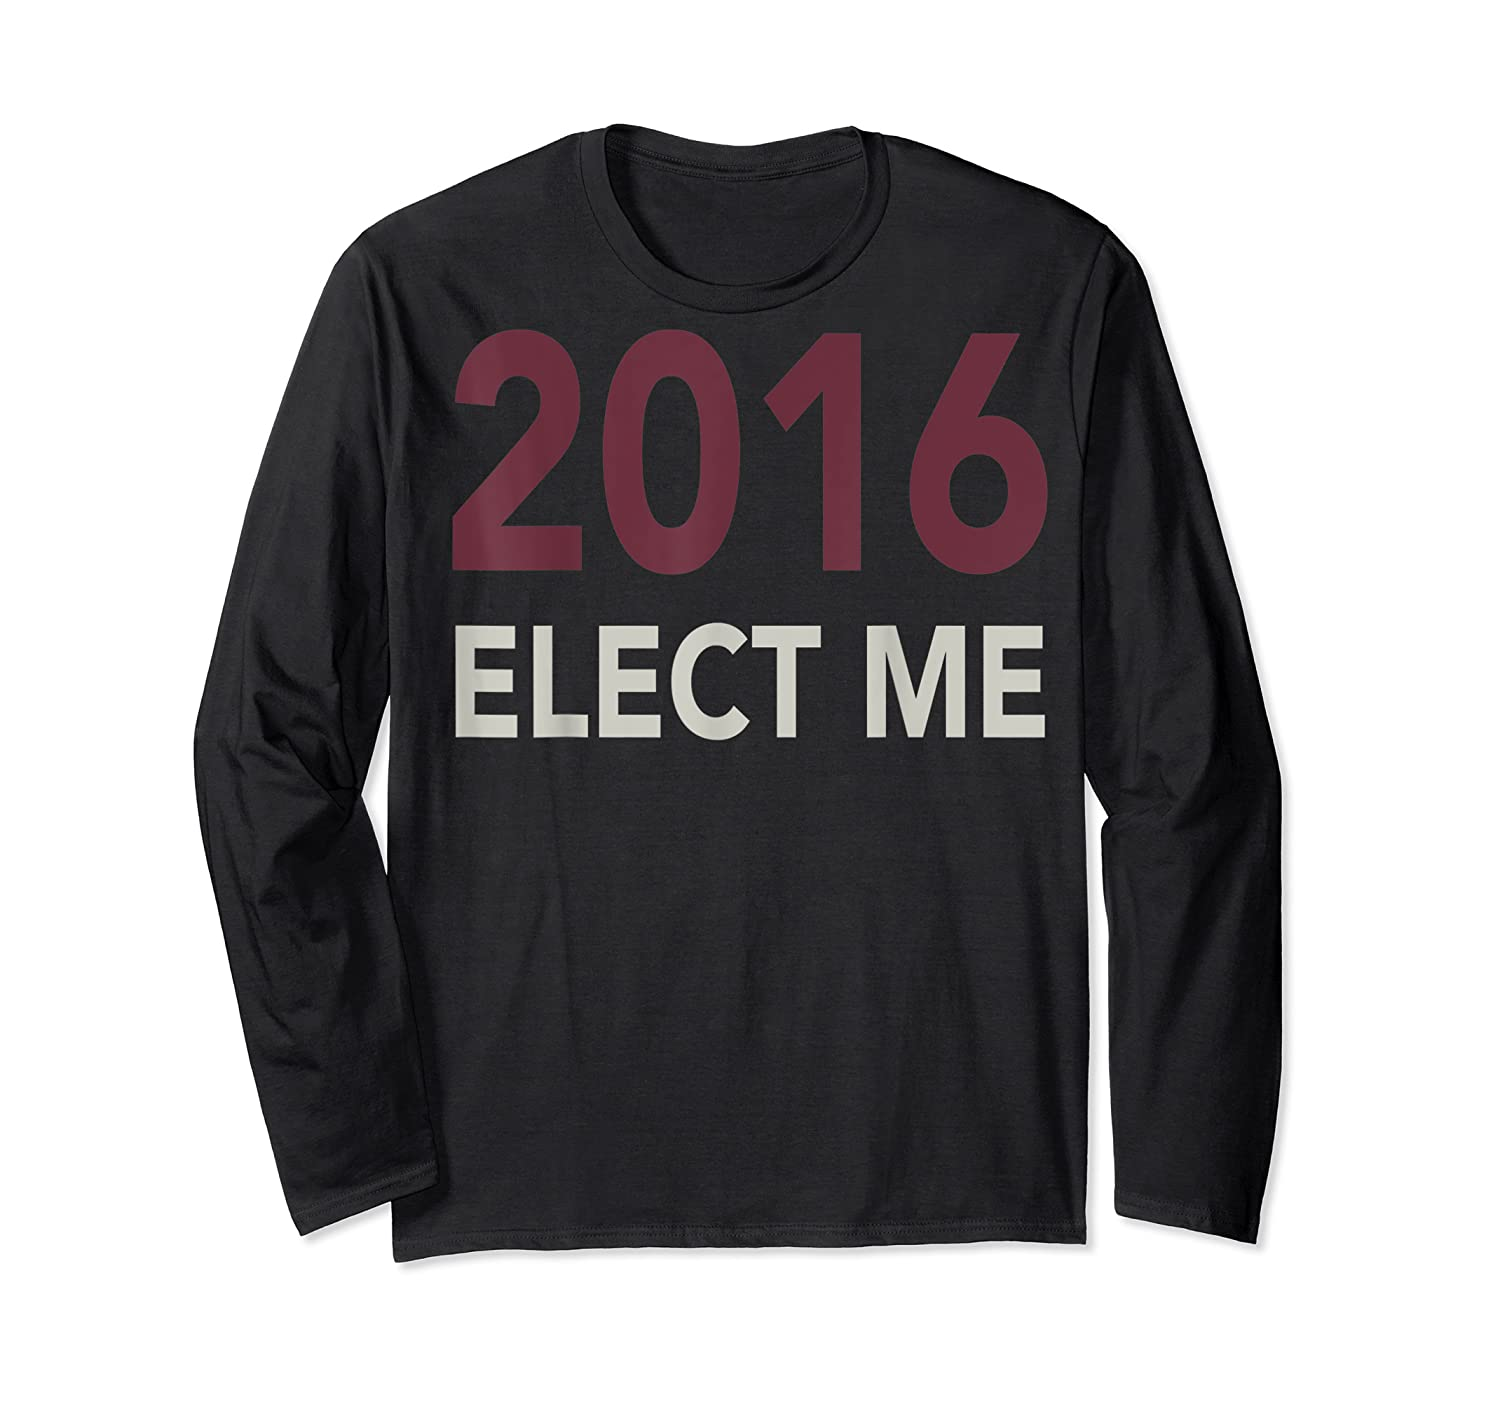 2016 Elect Me Voting Election Day Graphic T Shirt Long Sleeve T-shirt